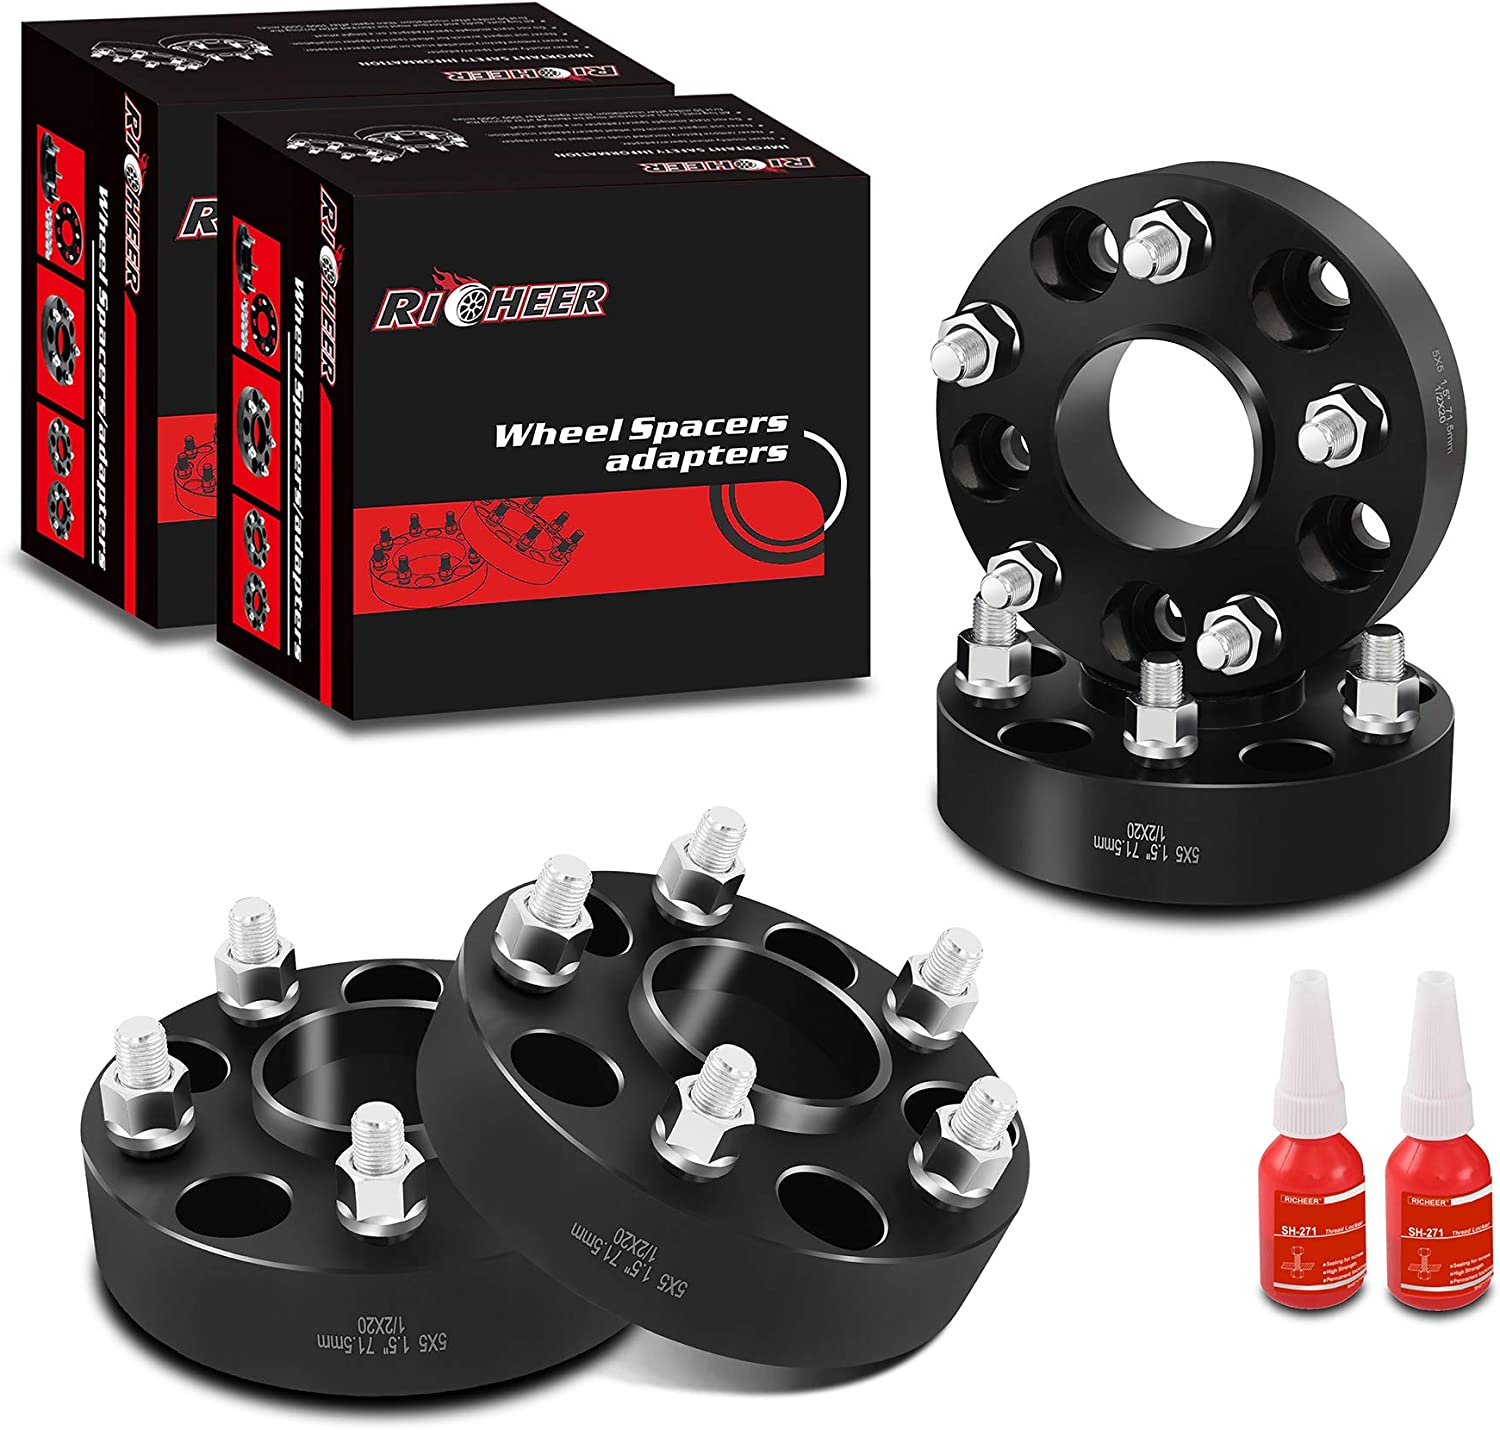 1999-2010 Grand Cherokee WJ WK Richeer 1.5 Forged Hubcentric 5x5 Wheel Spacers for Jeep JK WJ WK XK,1//2-20 Studs/&71.5 mm Bore for 2007-2018 Jeep Wrangler JK 2006-2010 Commander XK